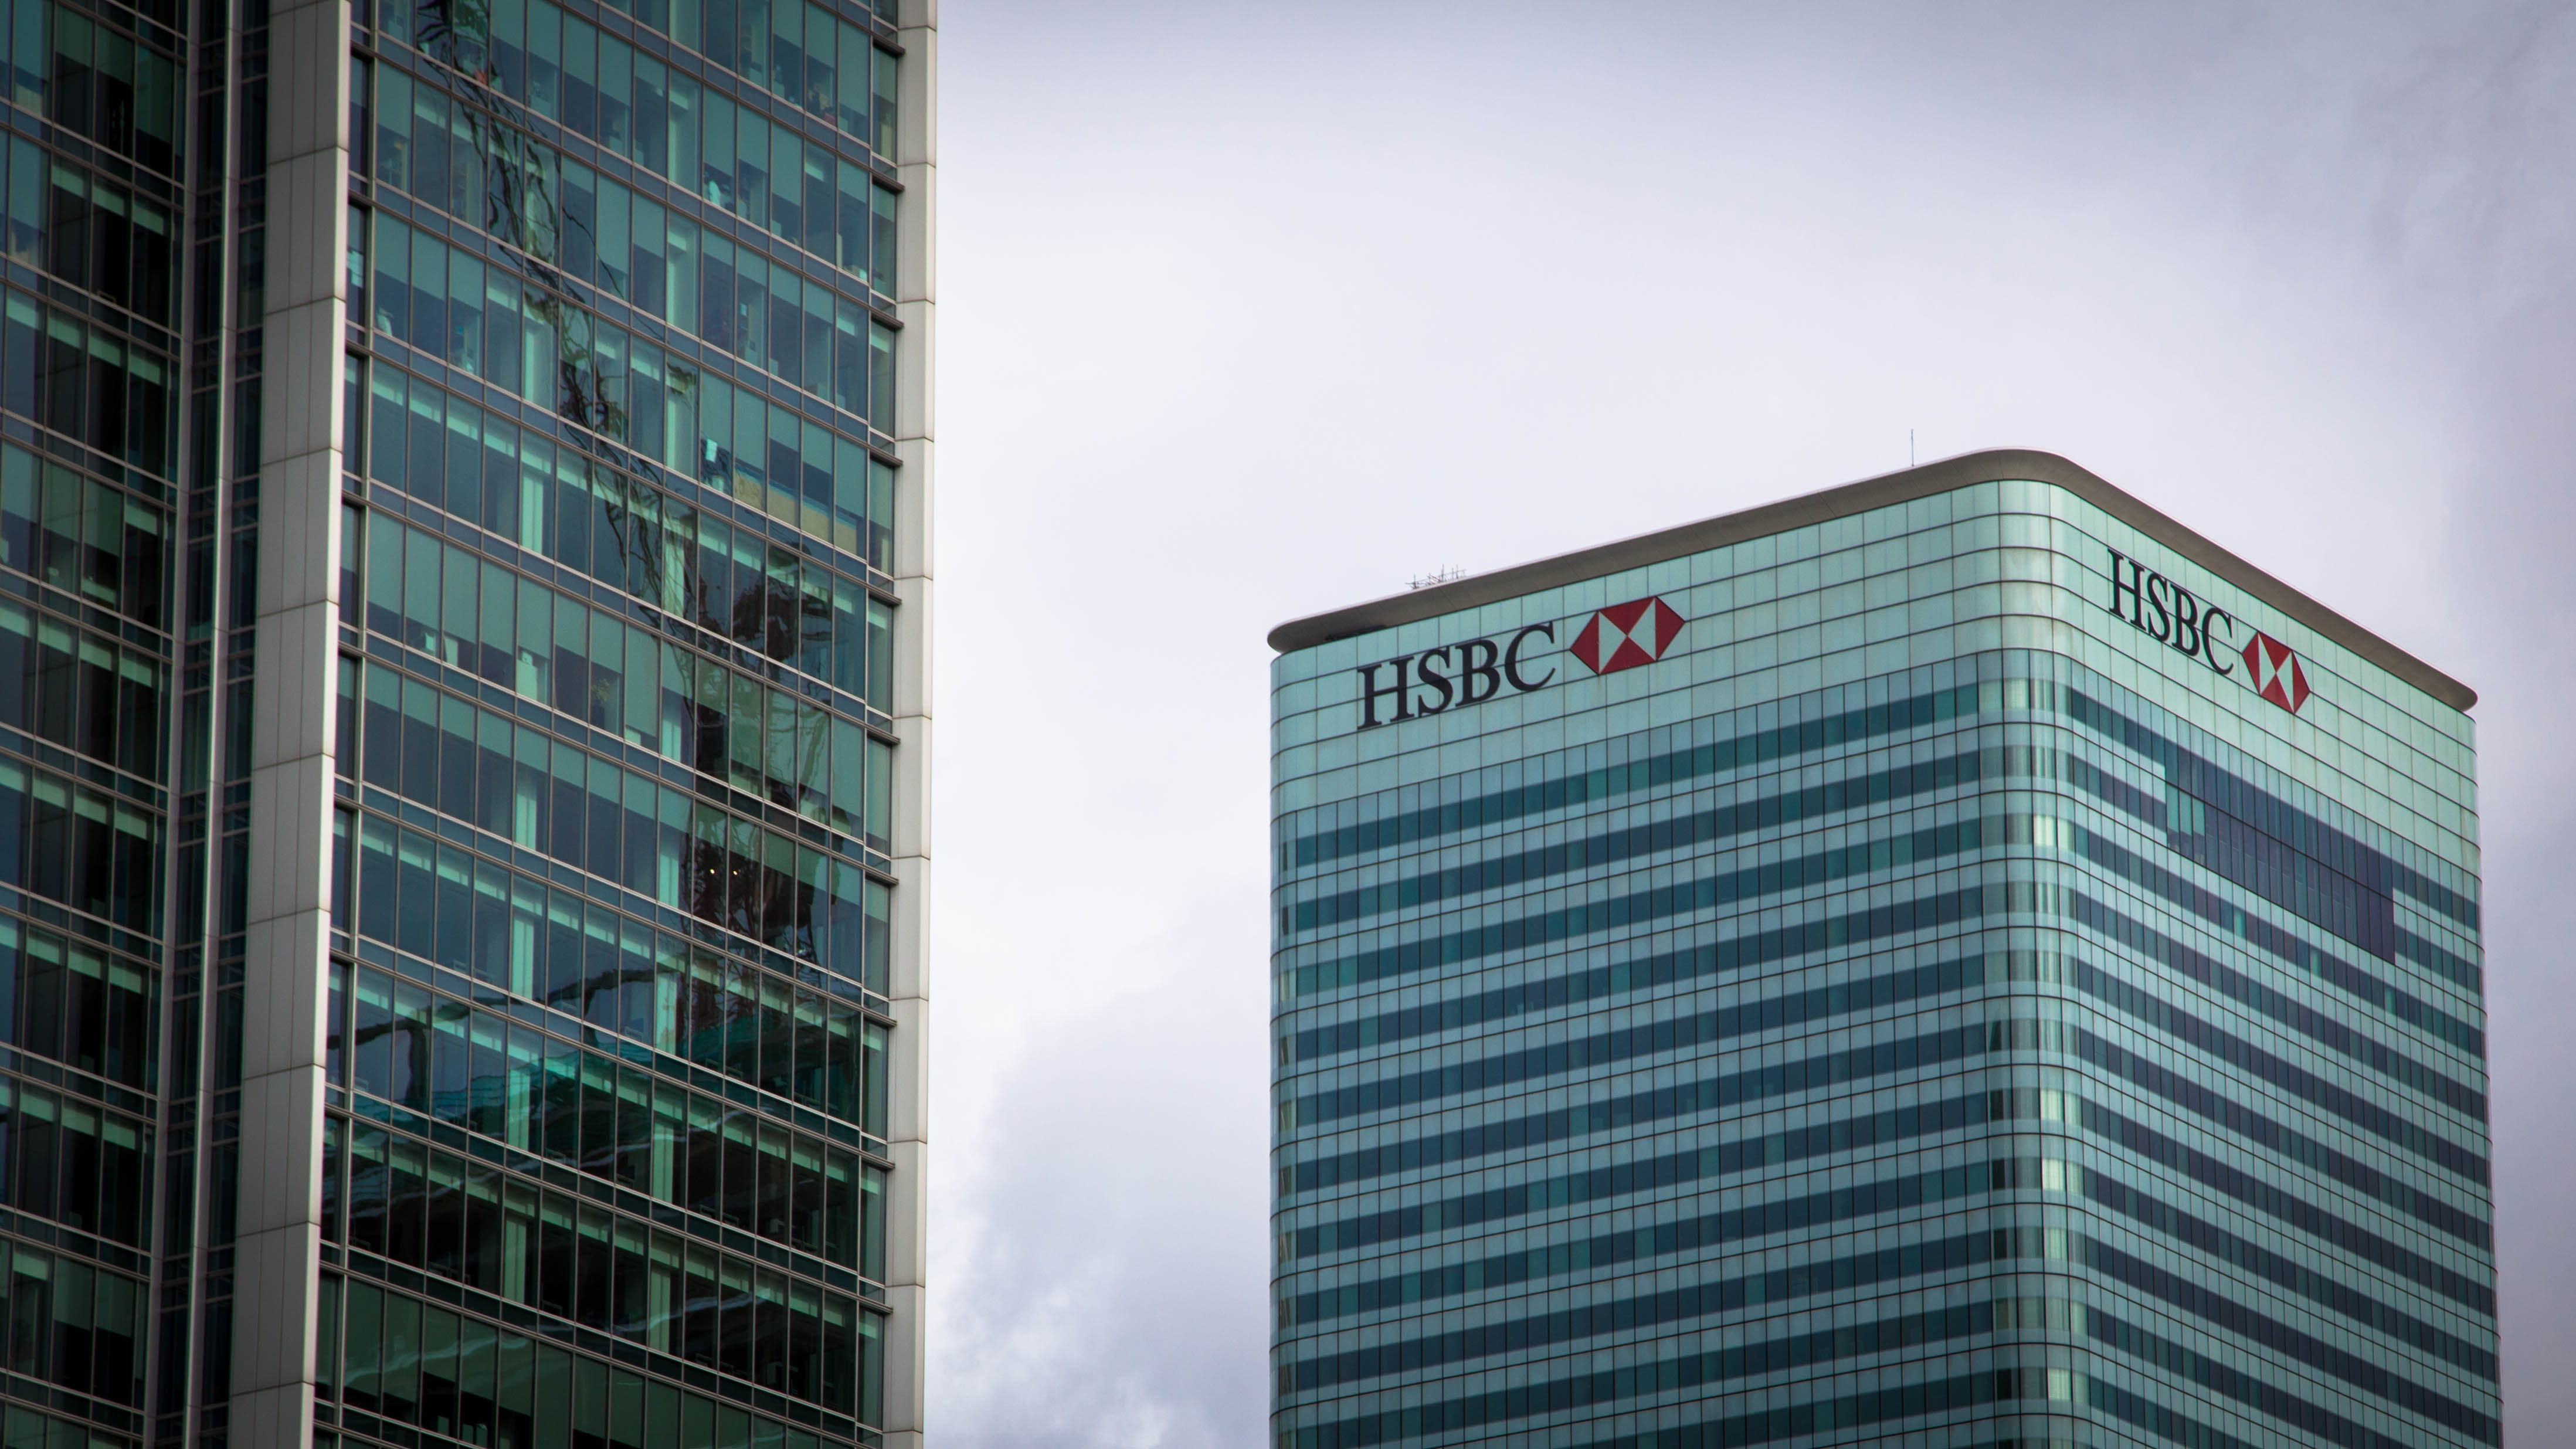 Hsbc malaysia contact us disinvestment target in budget 2021-15